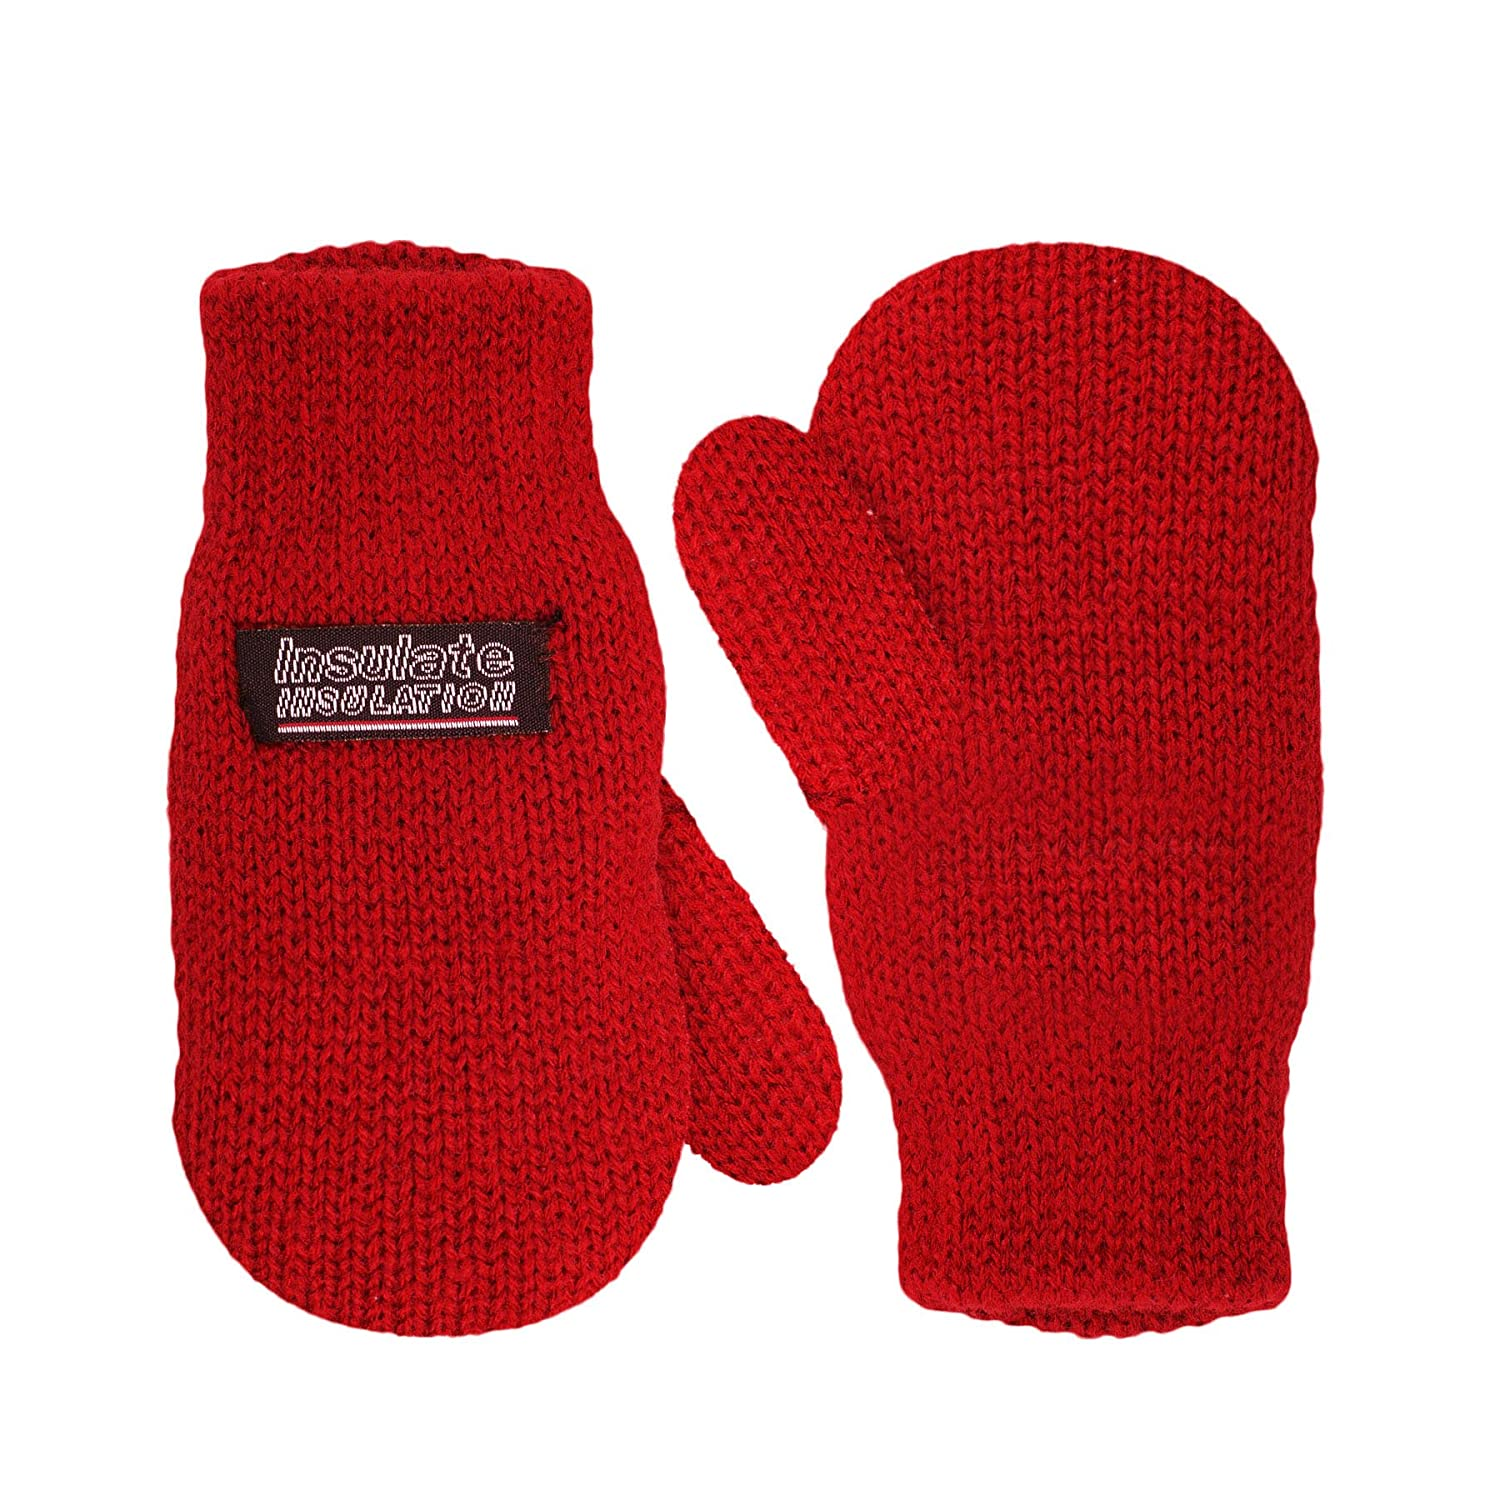 Sanremo Fashions Boys Knitted Fleece Lined Mittens Camel) 2150-M-CML